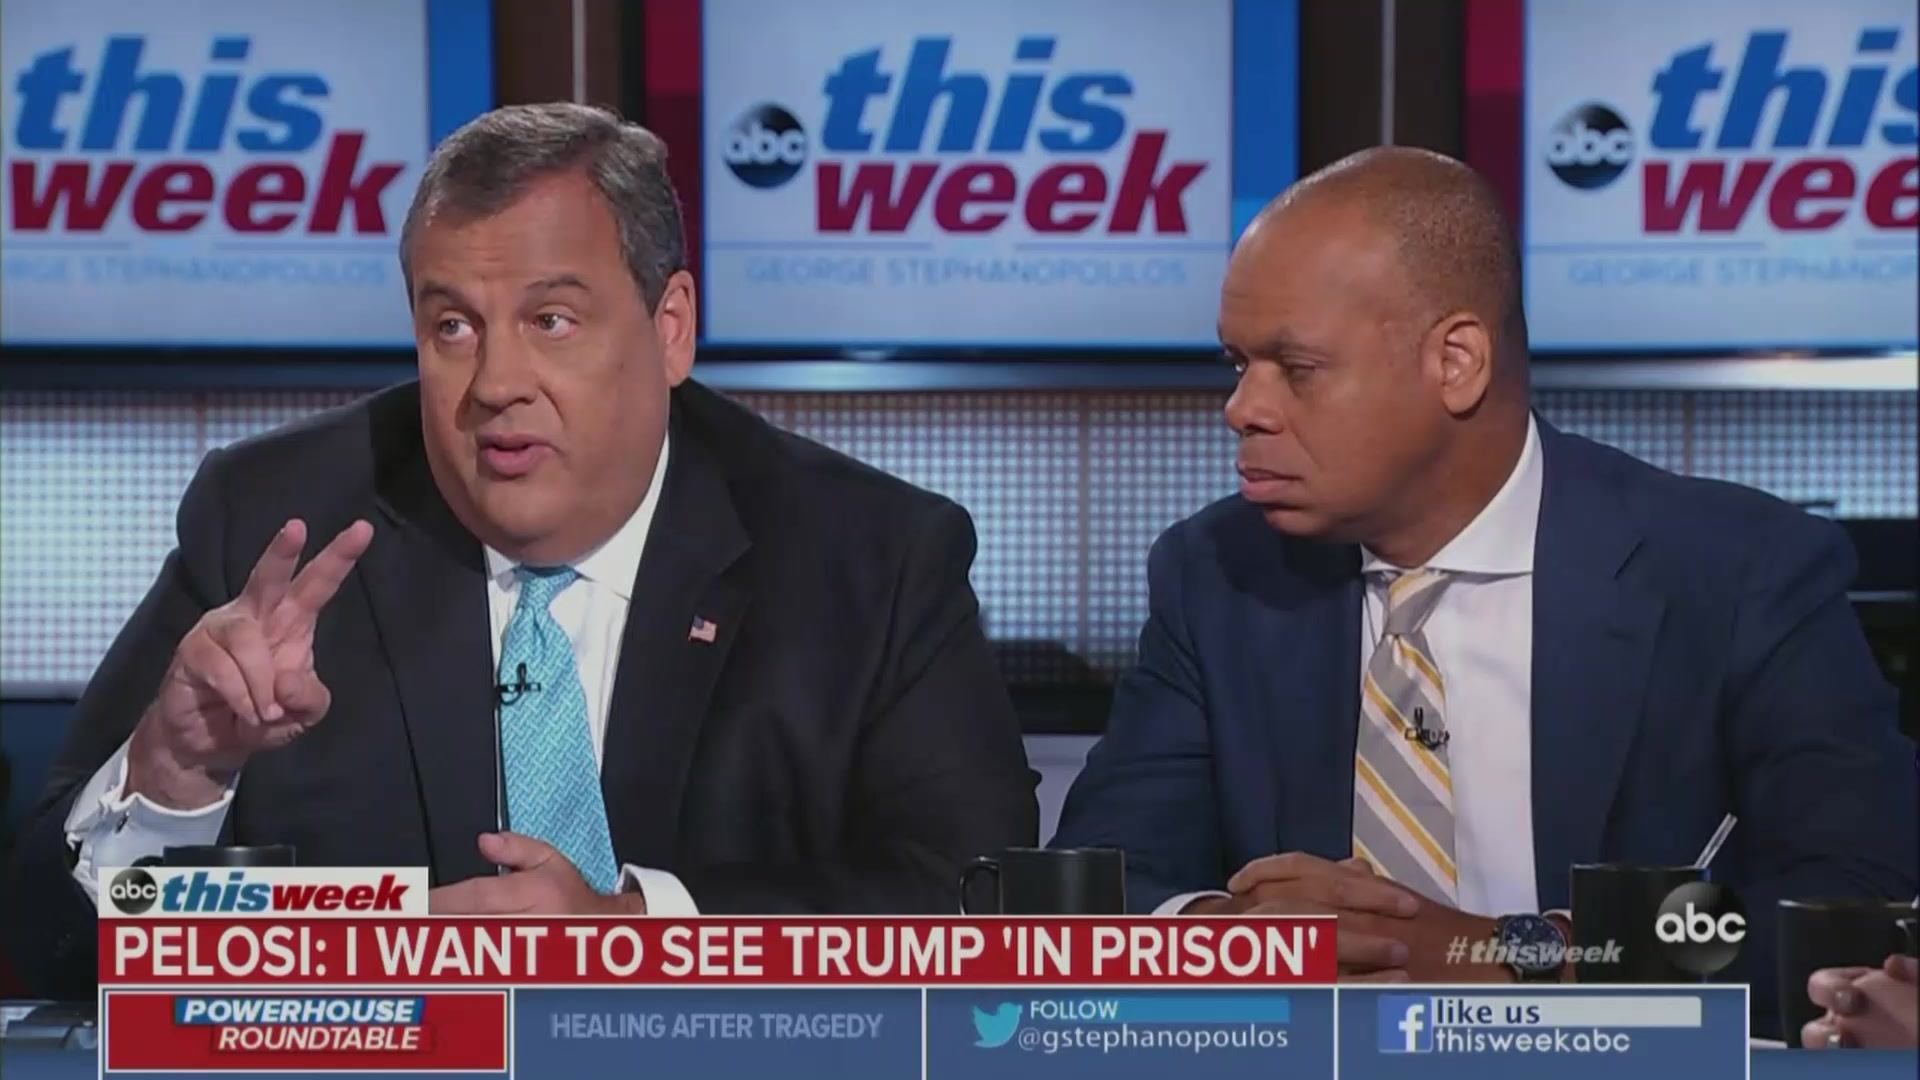 Chris Christie: Trump's Staff 'Served Him Poorly' With Ingraham Interview at D-Day Cemetery